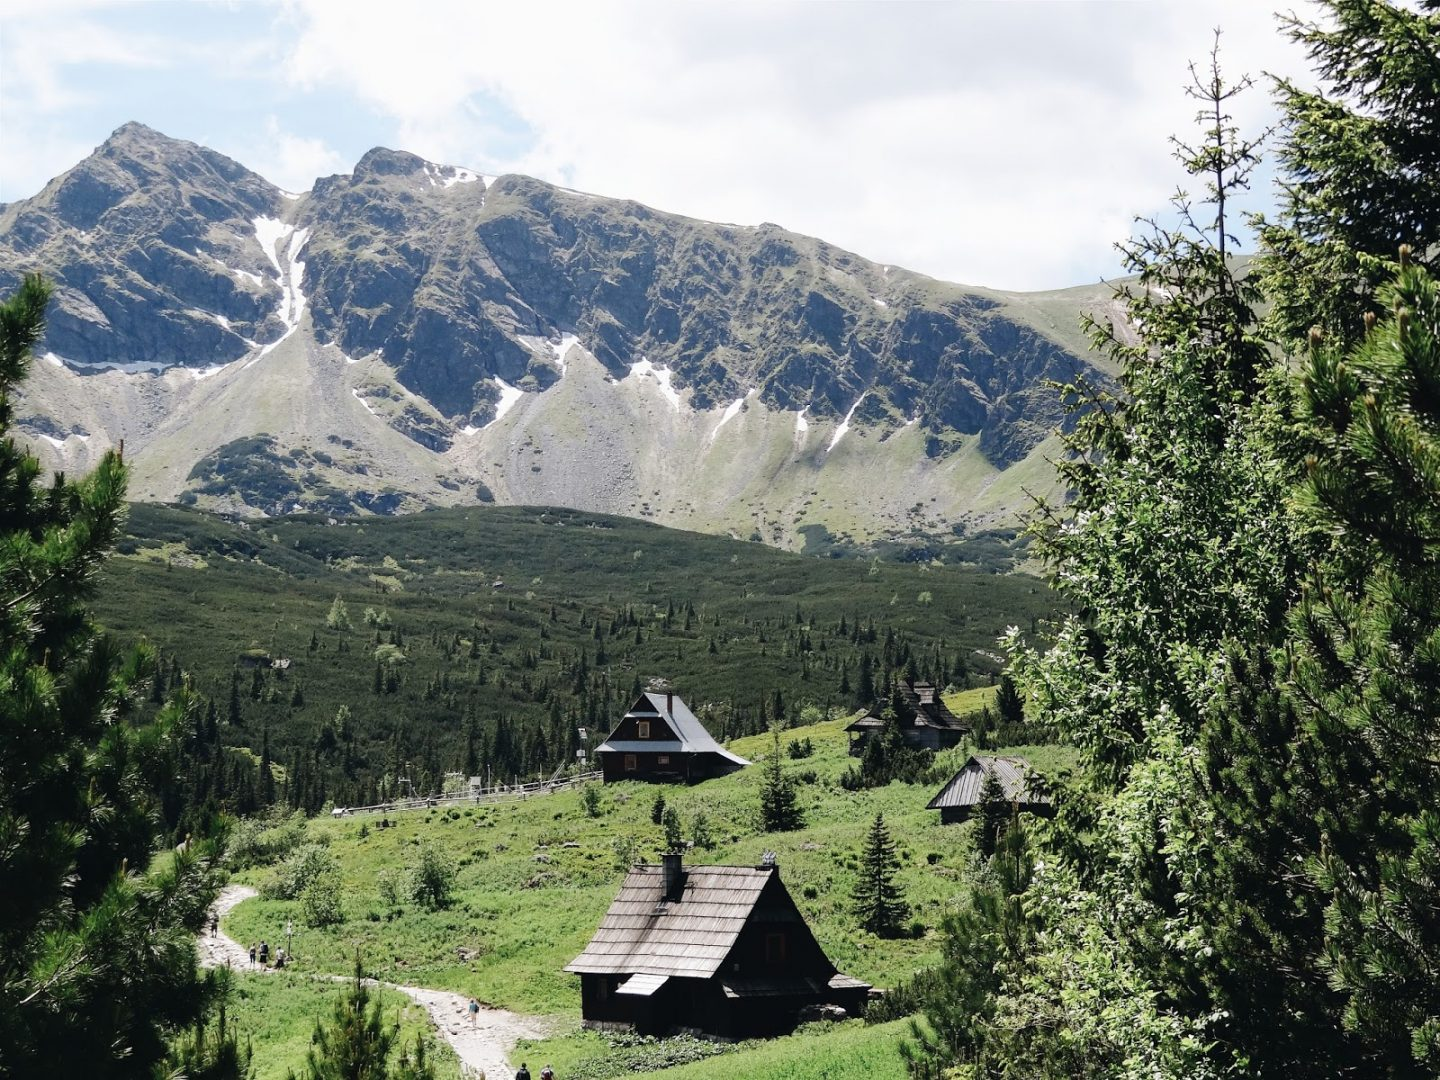 Hiking: My Experience in Tatra Mountains, Poland